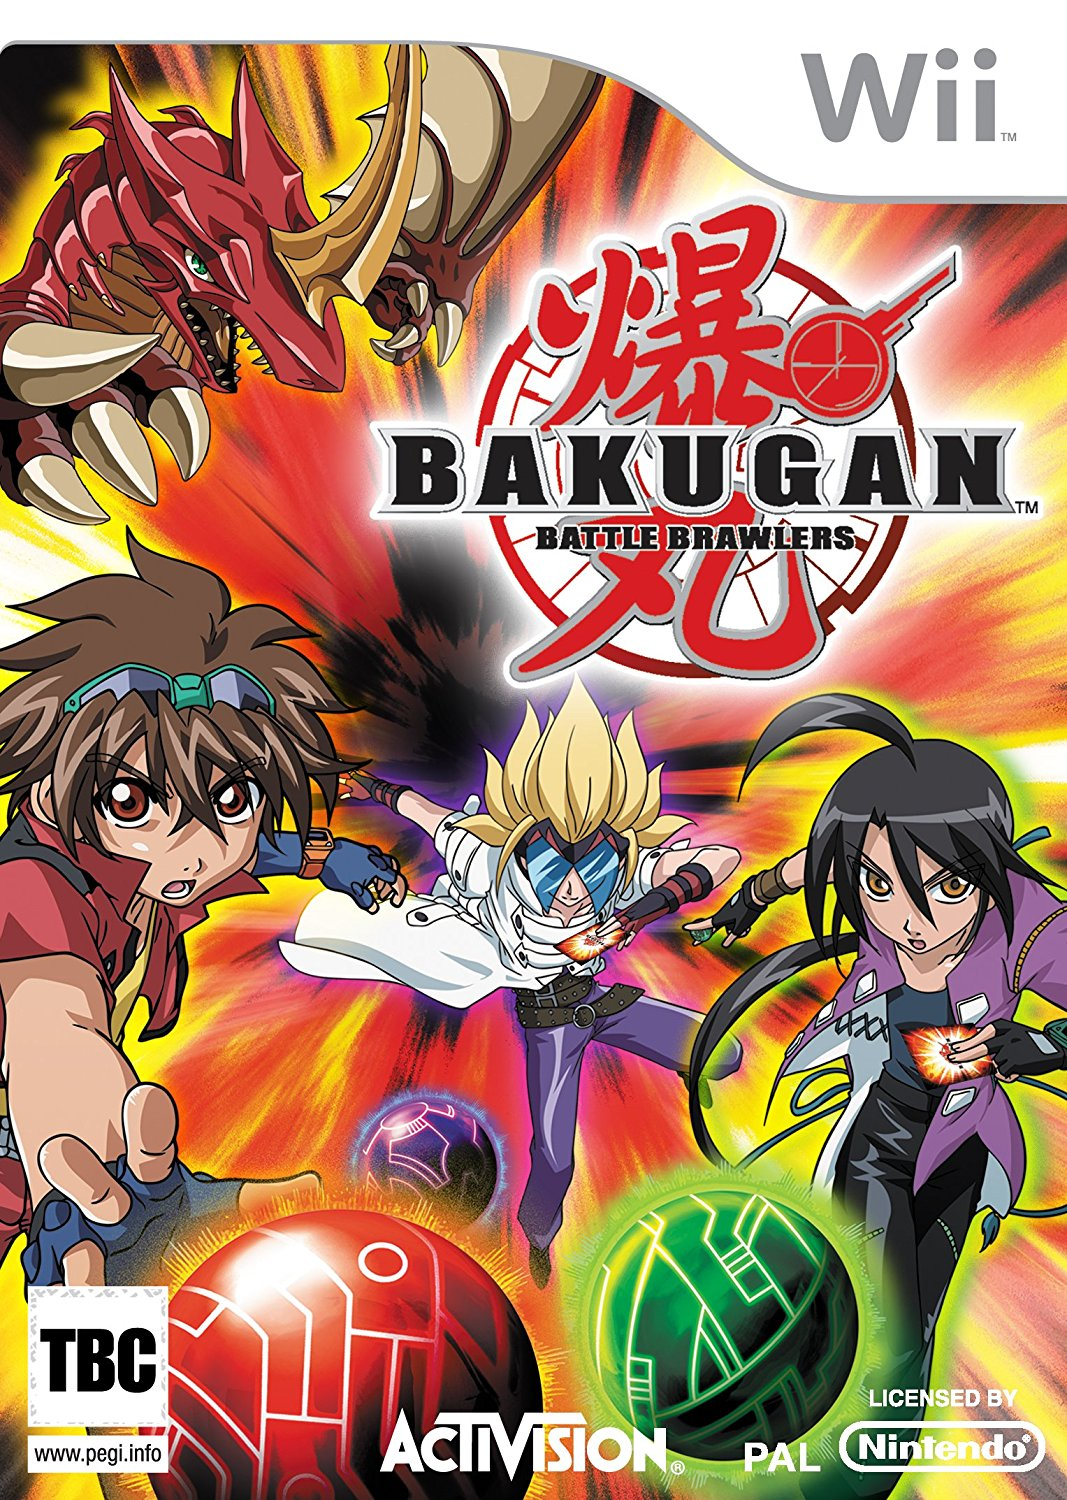 Bakugan: The Video Game | Episode 24 - YouTube